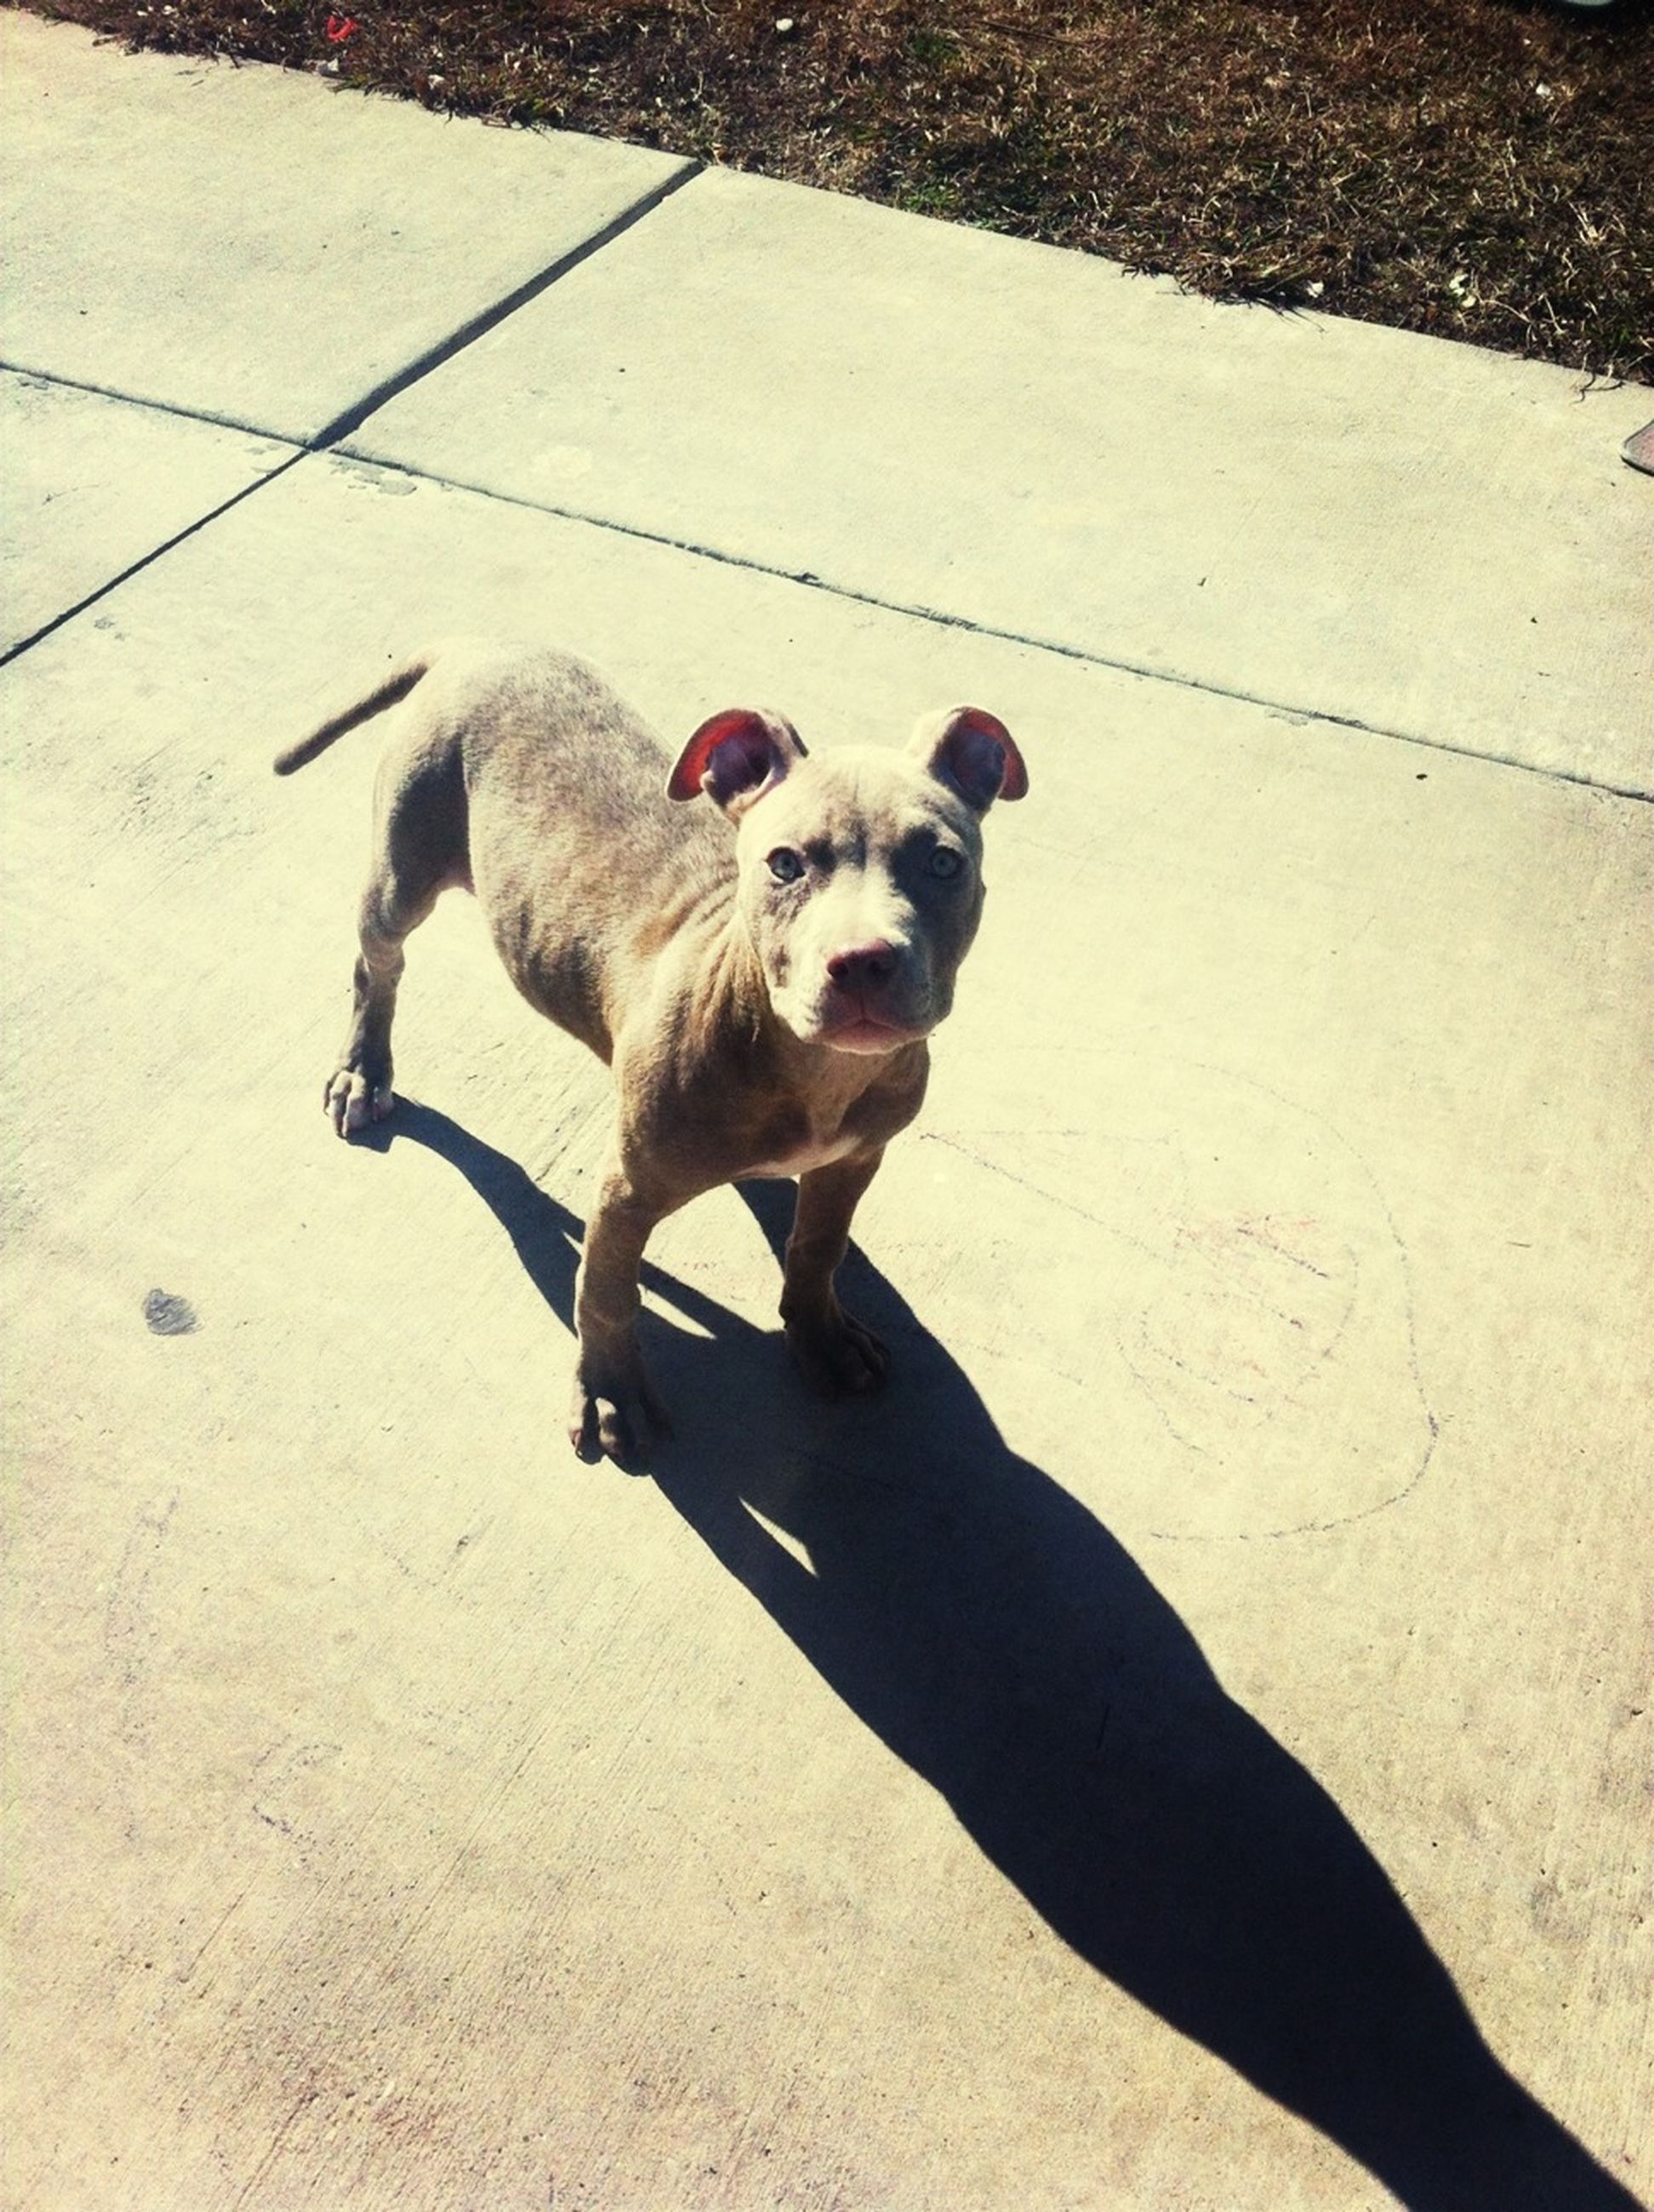 domestic animals, pets, animal themes, mammal, one animal, dog, full length, portrait, looking at camera, standing, pet collar, pet leash, high angle view, street, shadow, sunlight, zoology, animal, outdoors, sitting